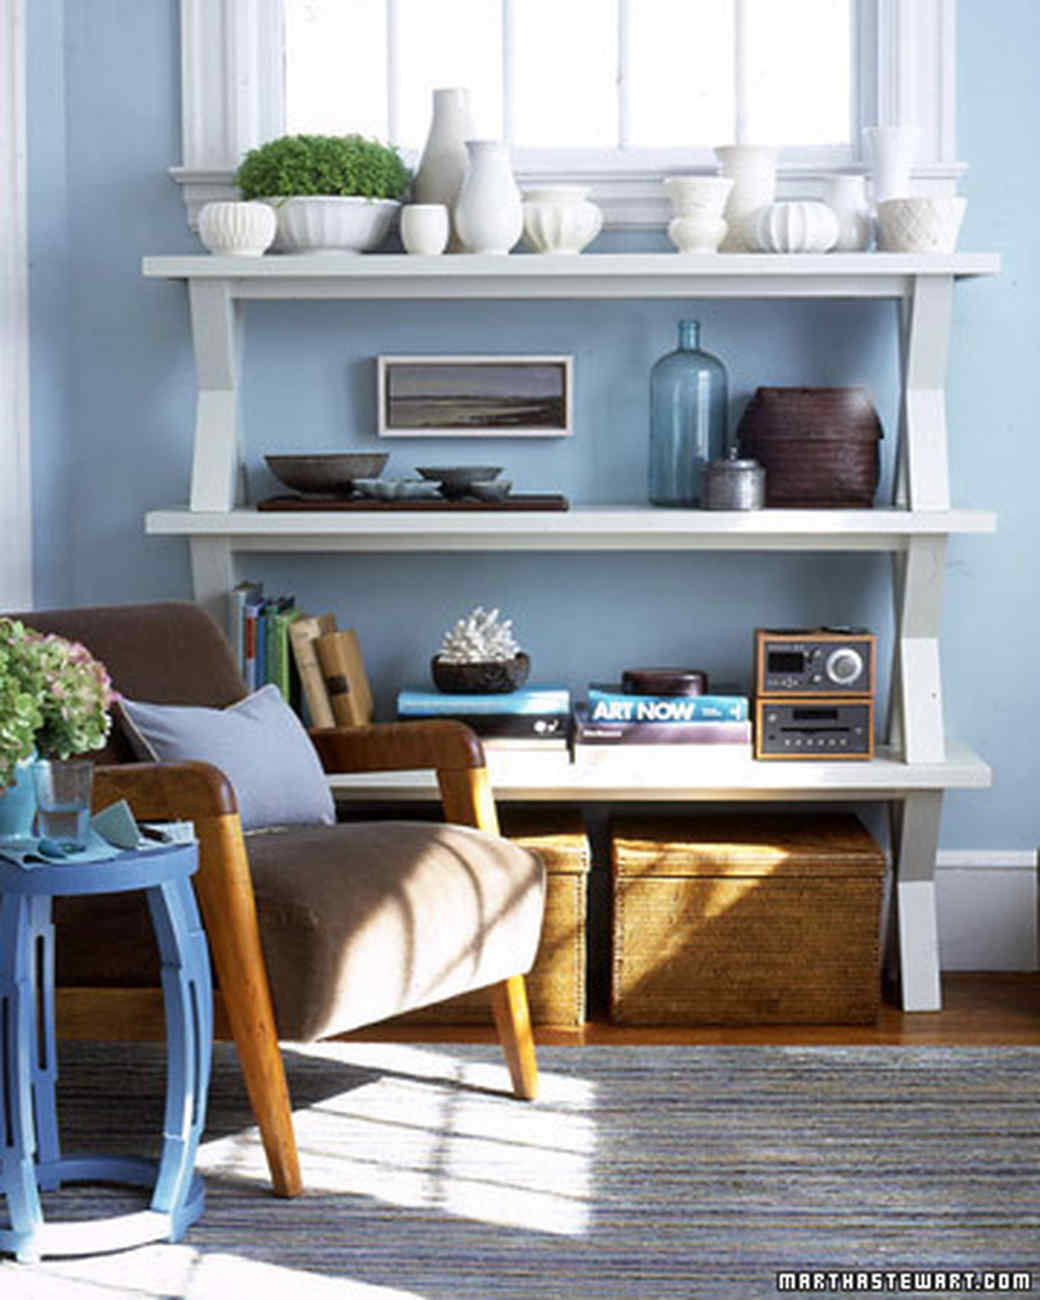 Banish Clutter: How to Organize Every Room in Your Home | Martha ...